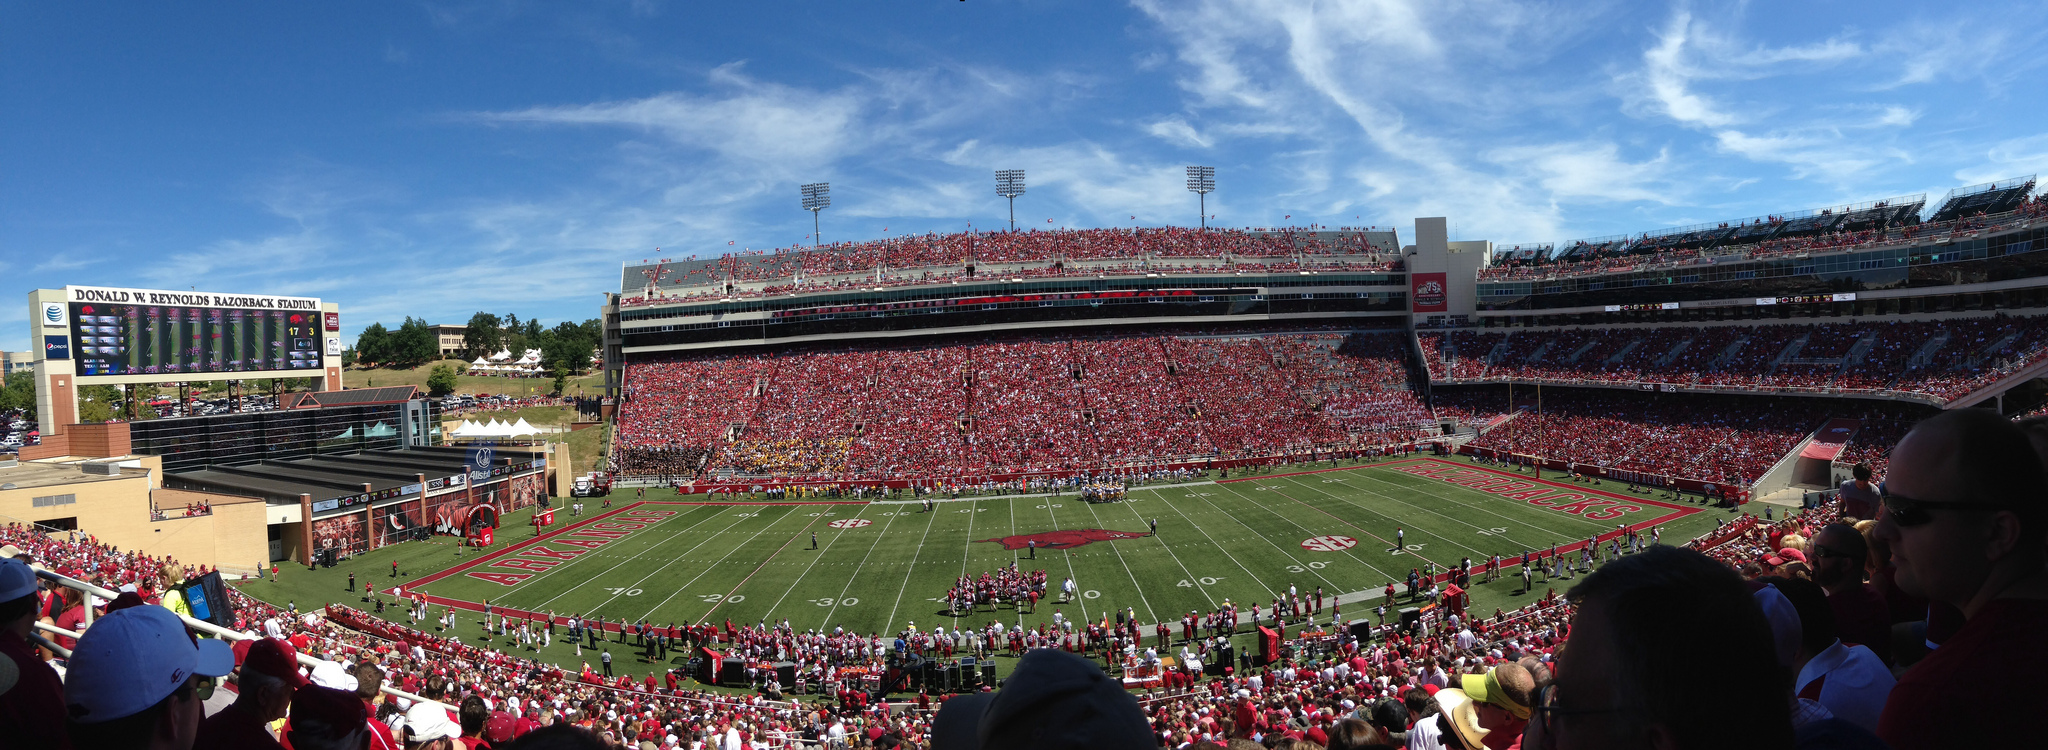 Razorback Stadium, home of the Arkansas Razorbacks